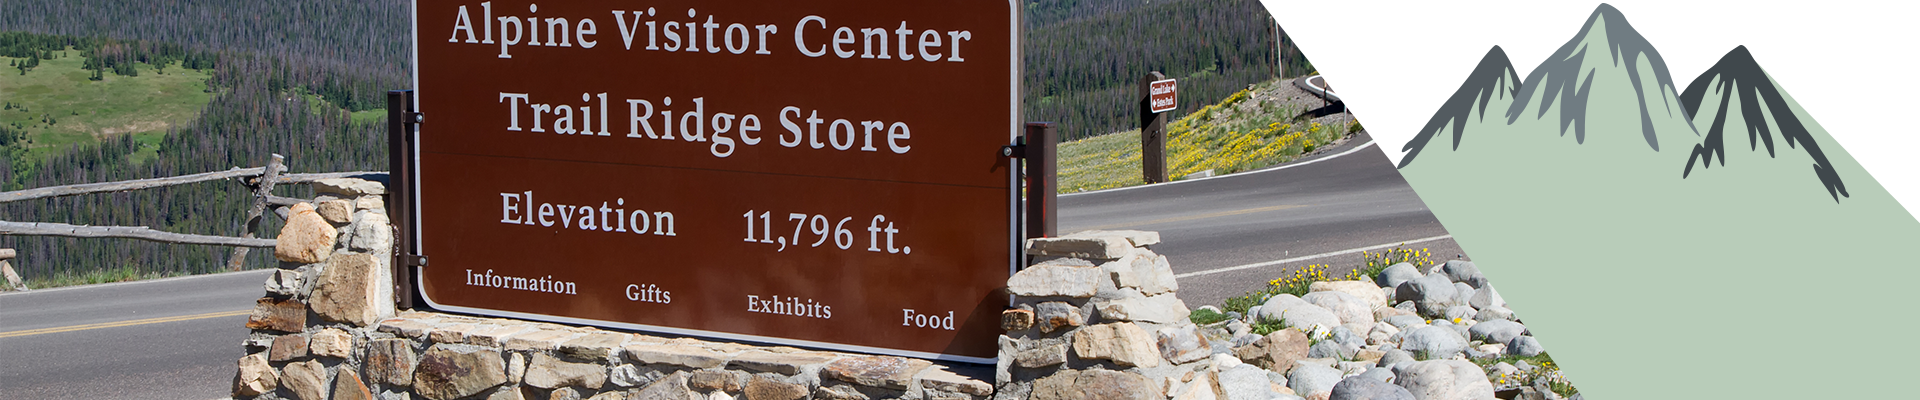 Alpine Visitor Center in the Rocky Mountains National Park.